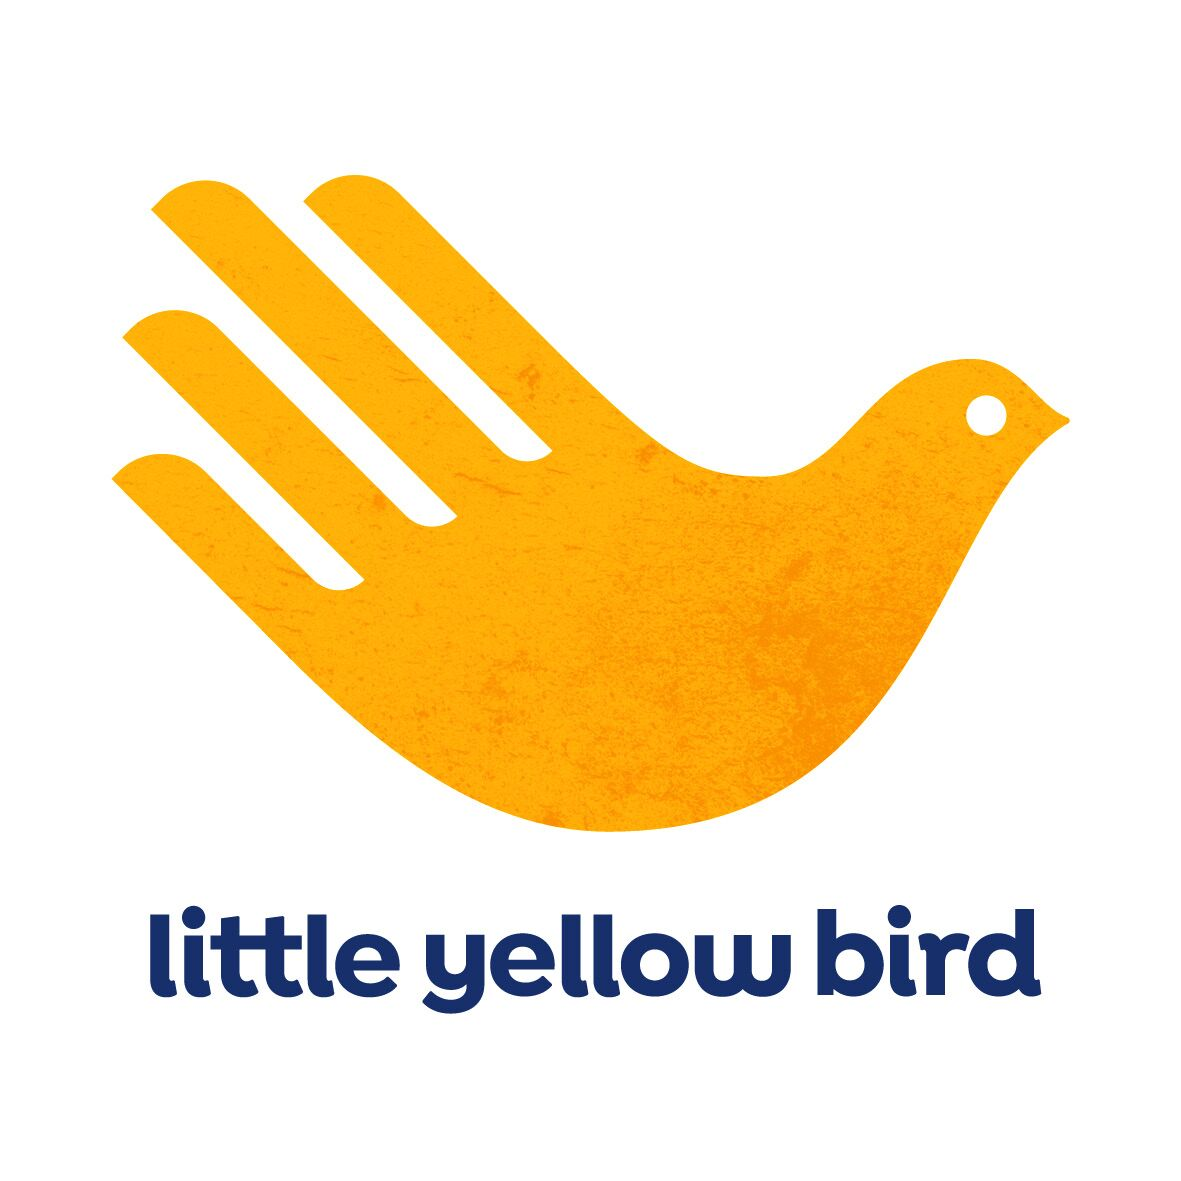 Little Yellow Bird creates fully traceable garments made from 100% rain-fed organic cotton with traceability from cotton seed to factory floor.